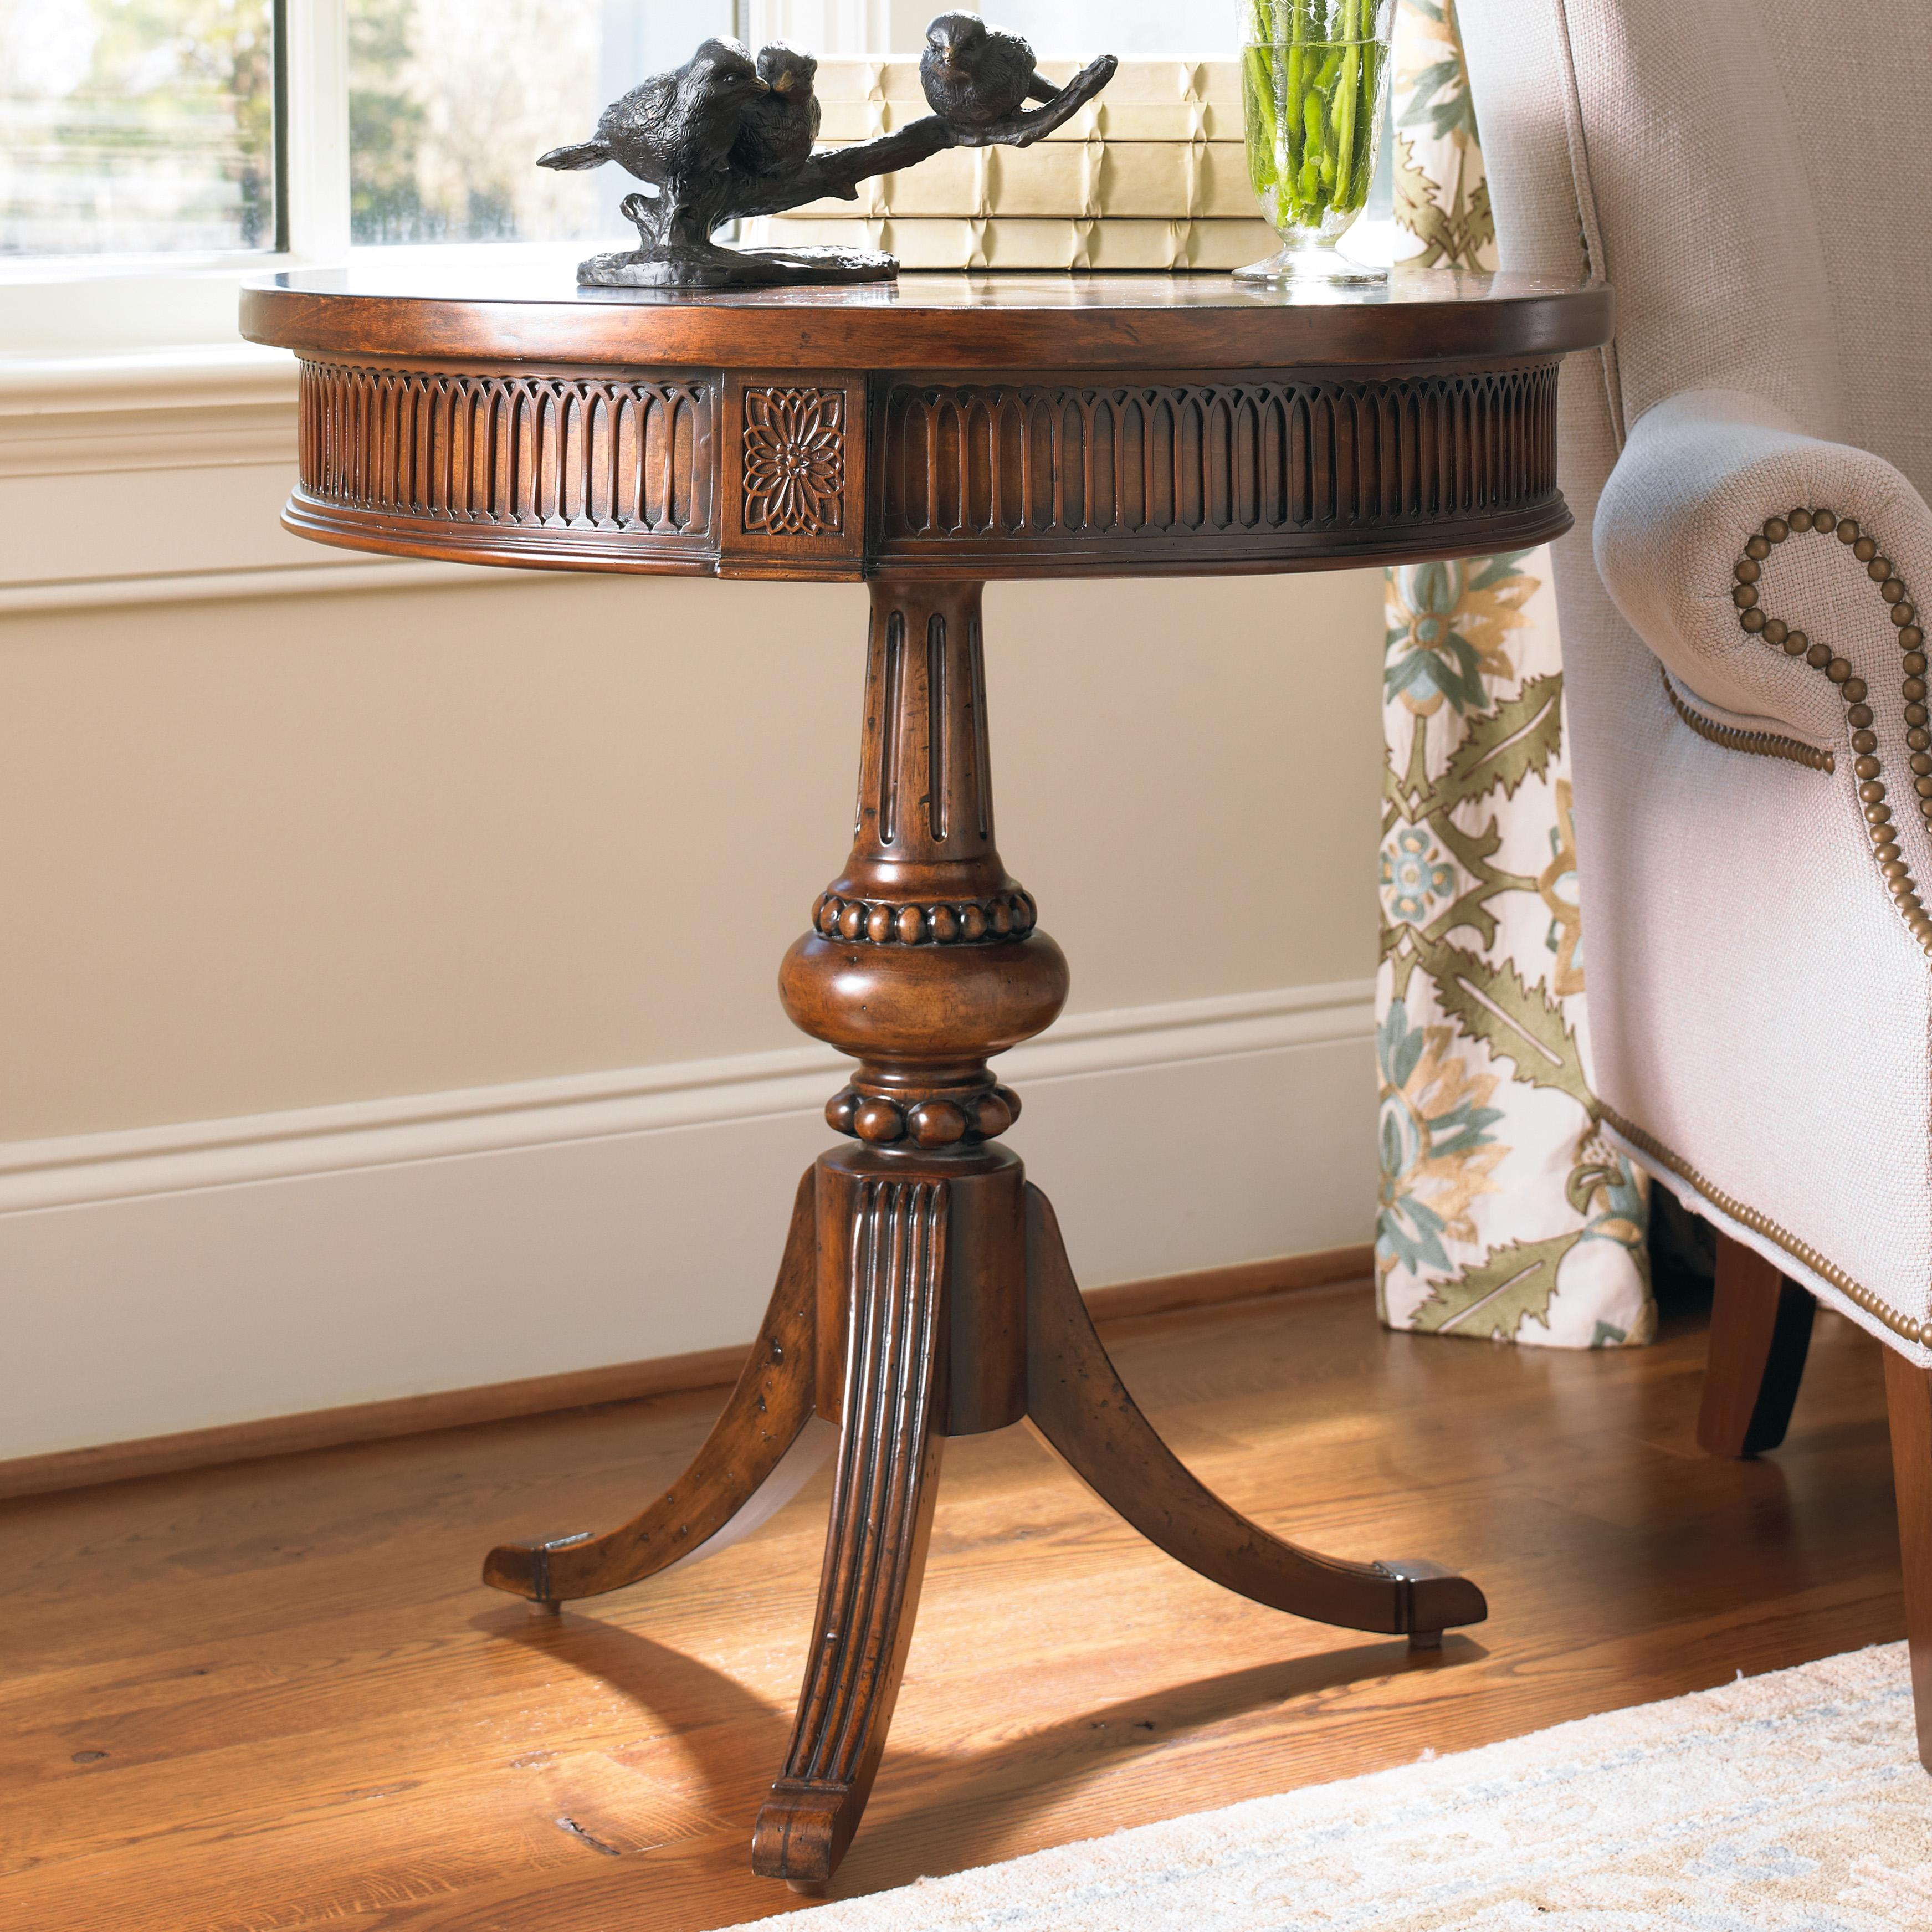 hamilton home living room accents round accent table with ornate products hooker furniture color pedestal wood glass coffee and end sets tablecloths napkins black white marble